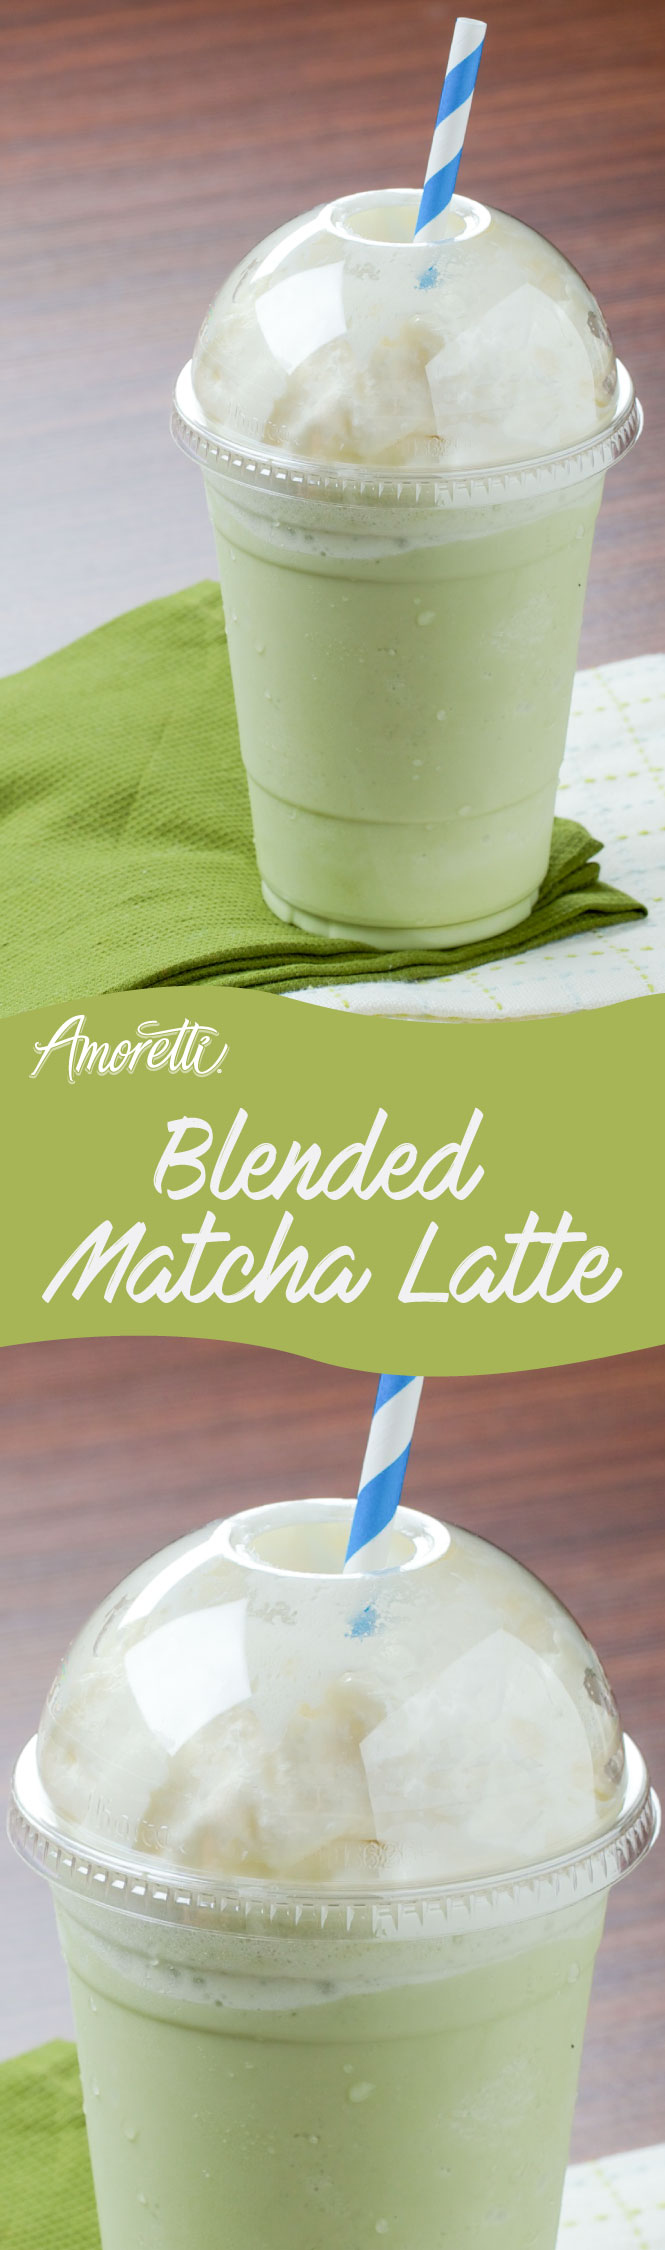 The combination of Honeydew Melon Syrup and matcha make a delicious drink!